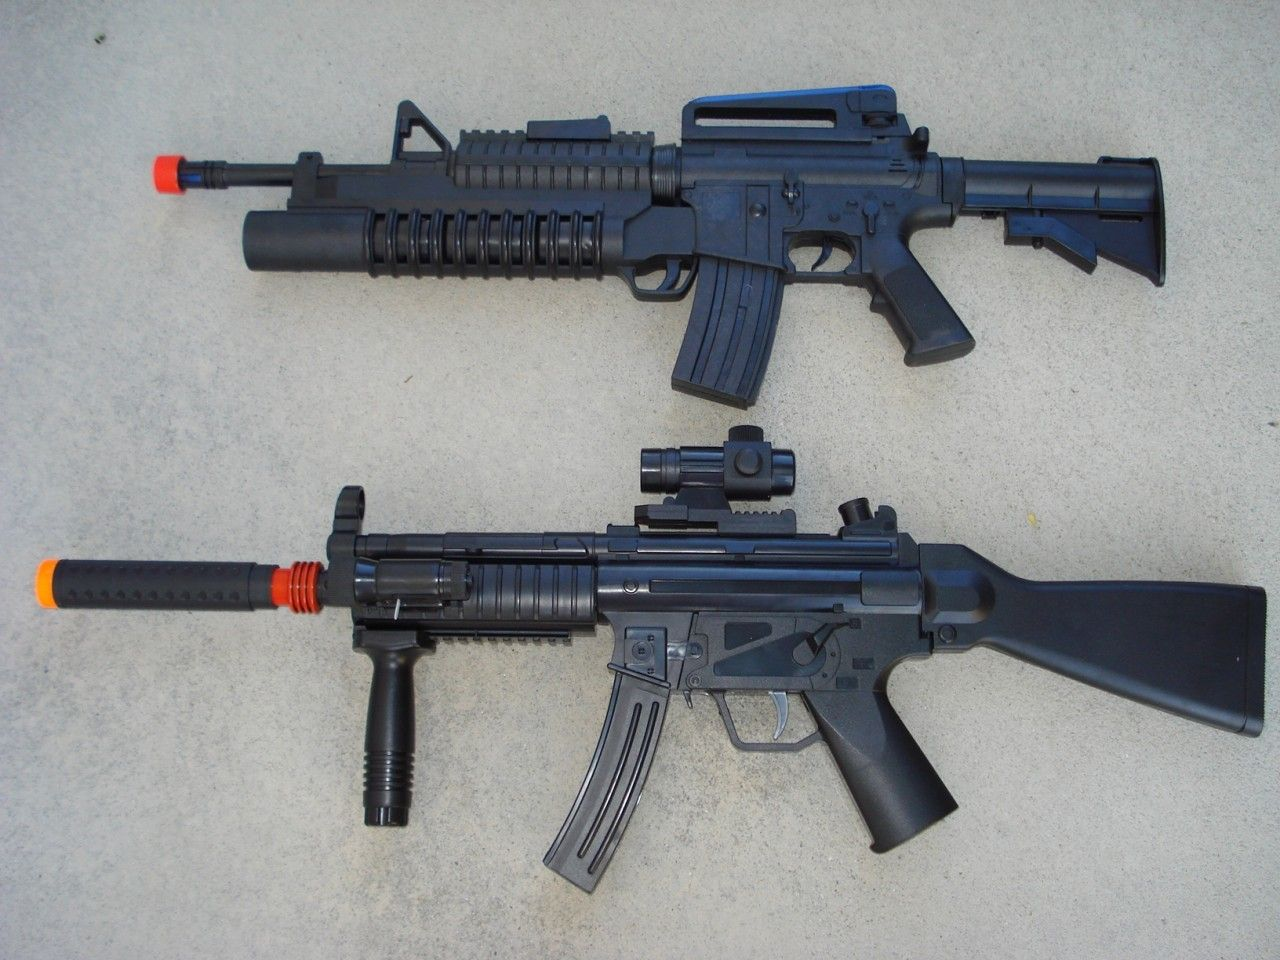 Pin on combat mission toy gun sets